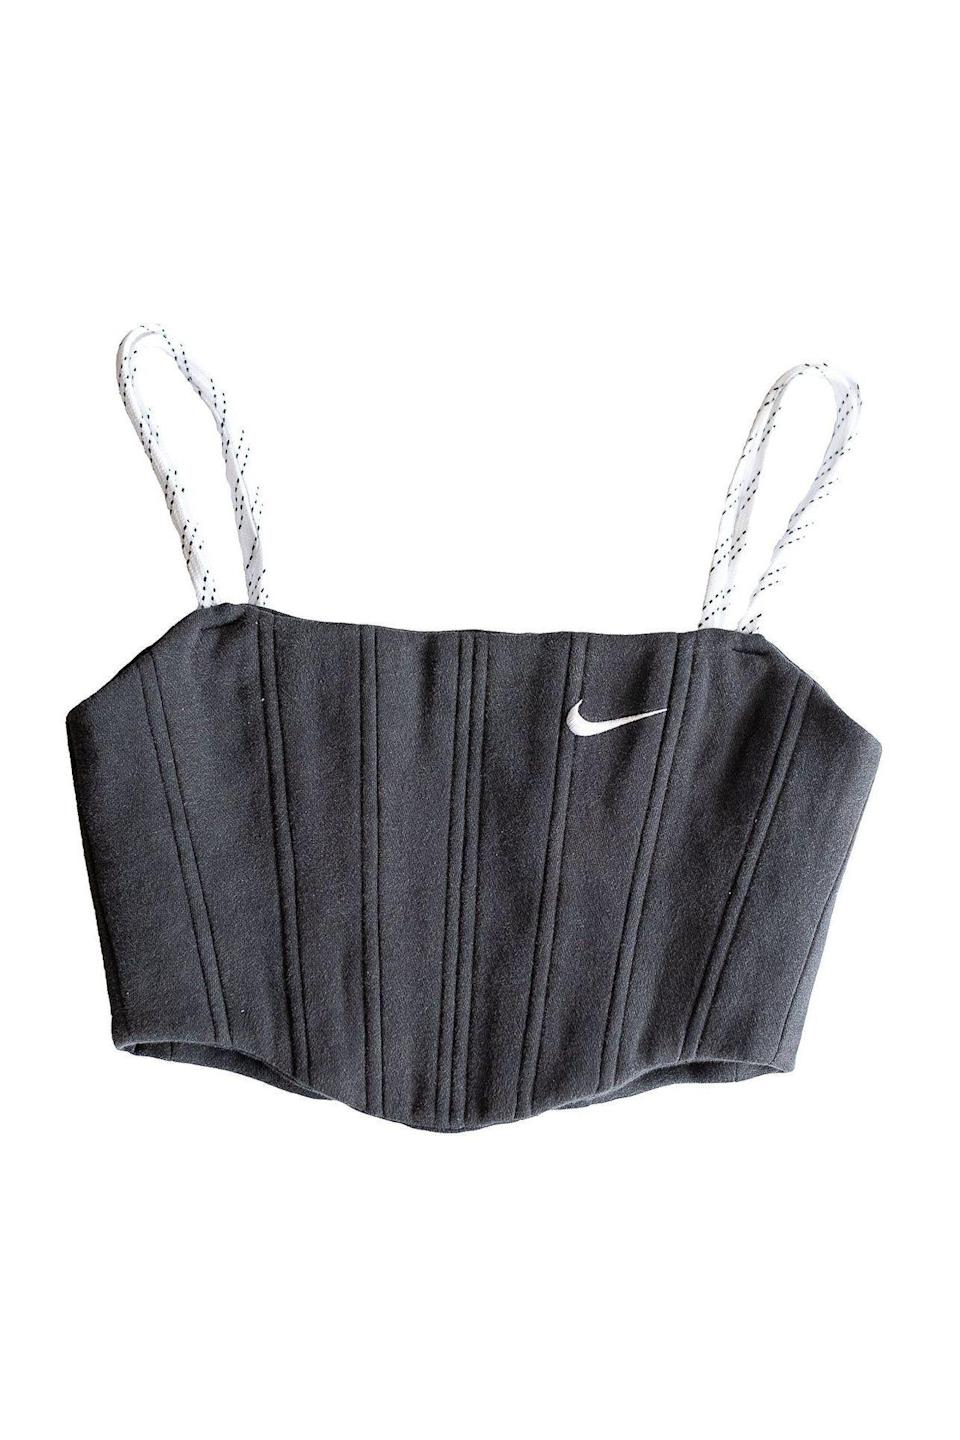 """<p><strong>almost.on.time</strong></p><p>almostontimesf.com</p><p><strong>$150.00</strong></p><p><a href=""""https://almostontimesf.com/products/basic-black-nike-sweats-corset"""" rel=""""nofollow noopener"""" target=""""_blank"""" data-ylk=""""slk:SHOP IT"""" class=""""link rapid-noclick-resp"""">SHOP IT</a></p><p>A fitted corset made from Nike sweats? Absolutely. These are all sold out, but stay on top of the drops for one-of-a-kind sexy sportswear that will make everyone you know insanely jealous.</p>"""